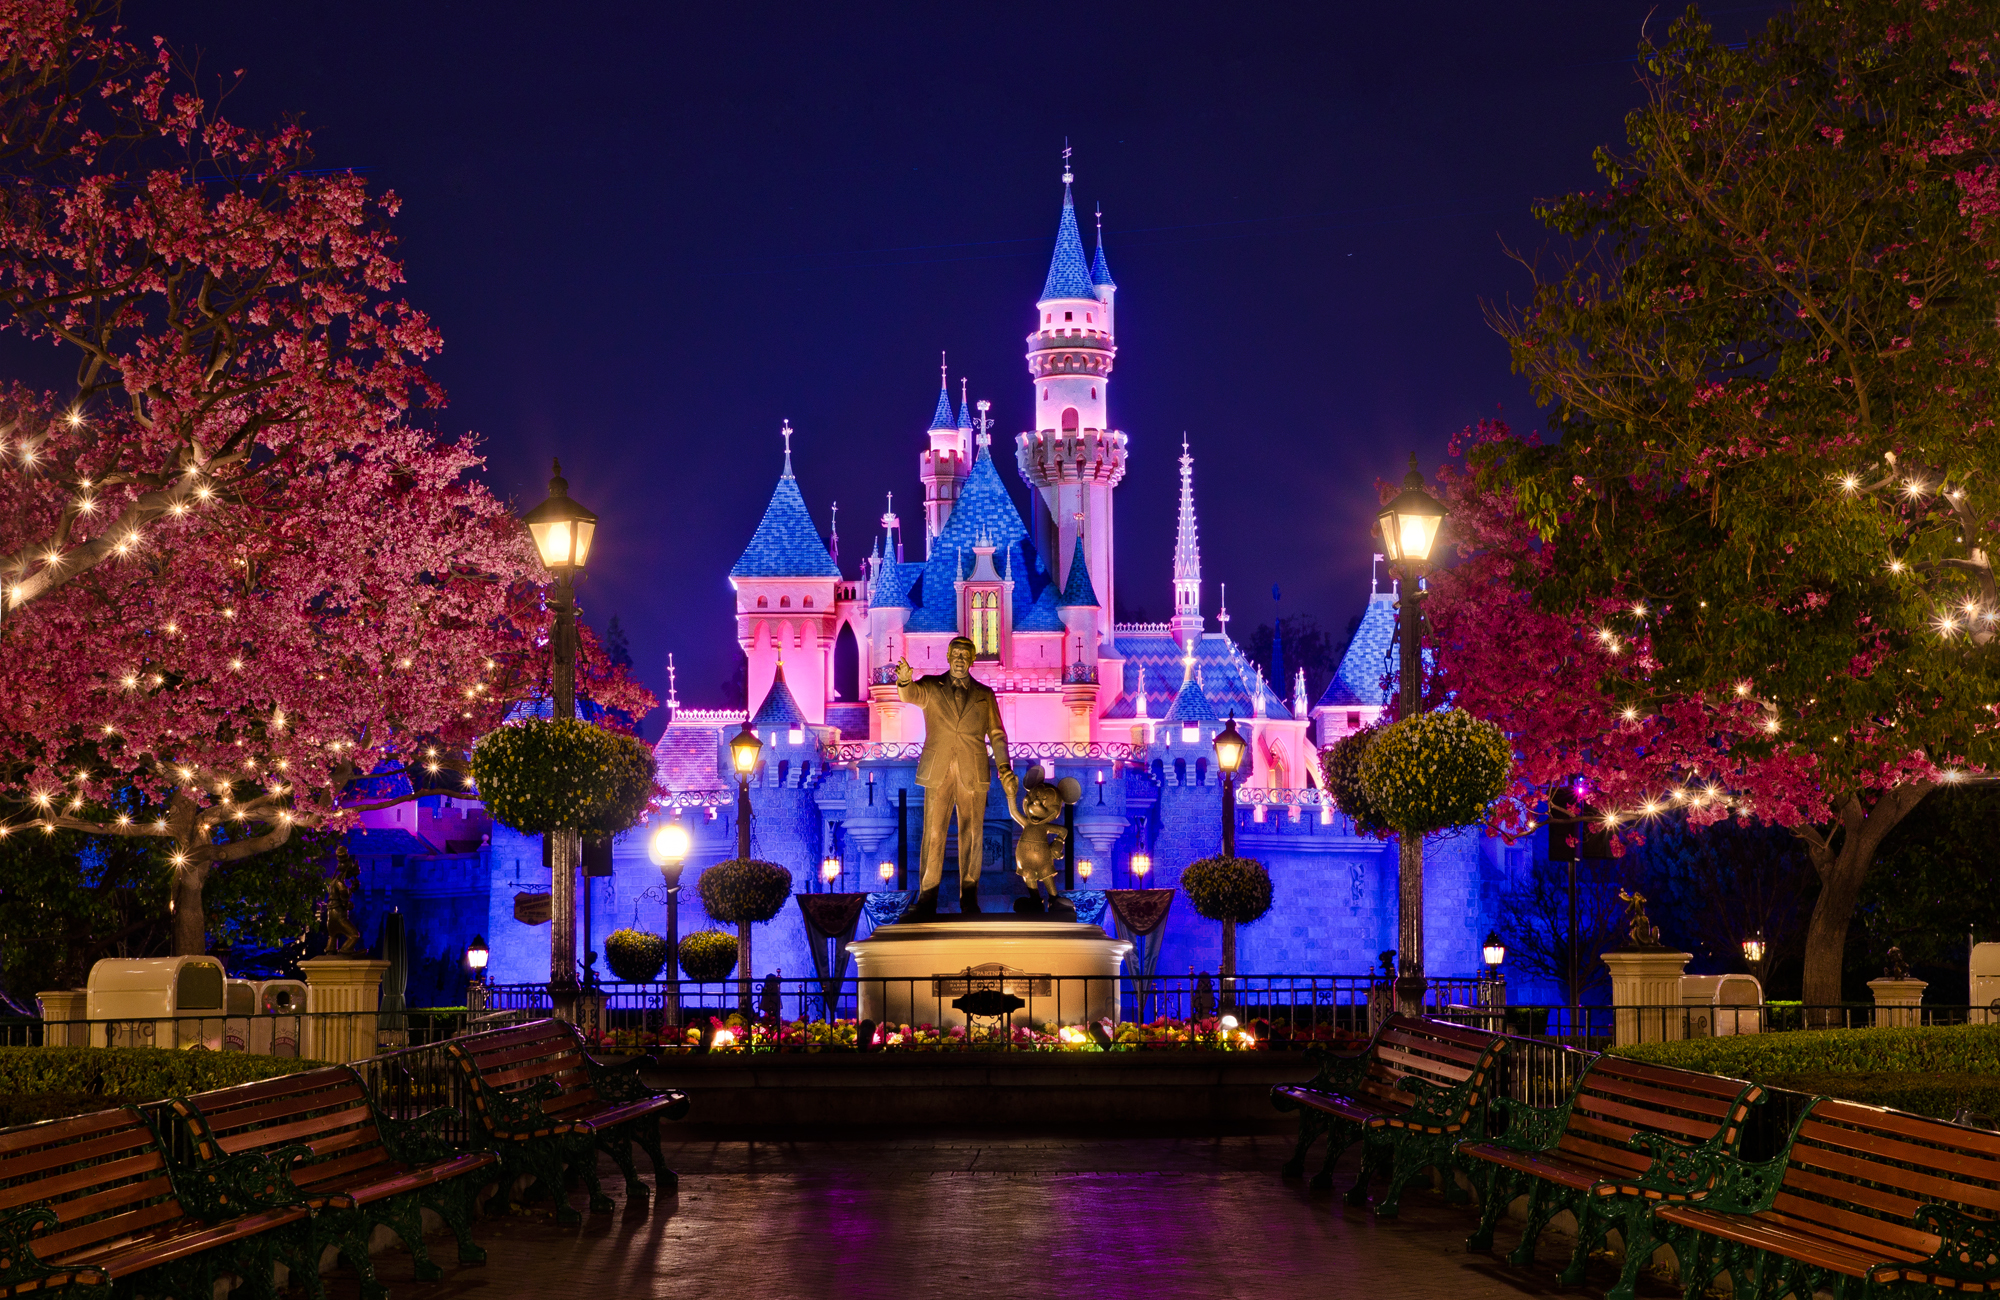 Disneyland California United States wwwvistanaturecom 2000x1300